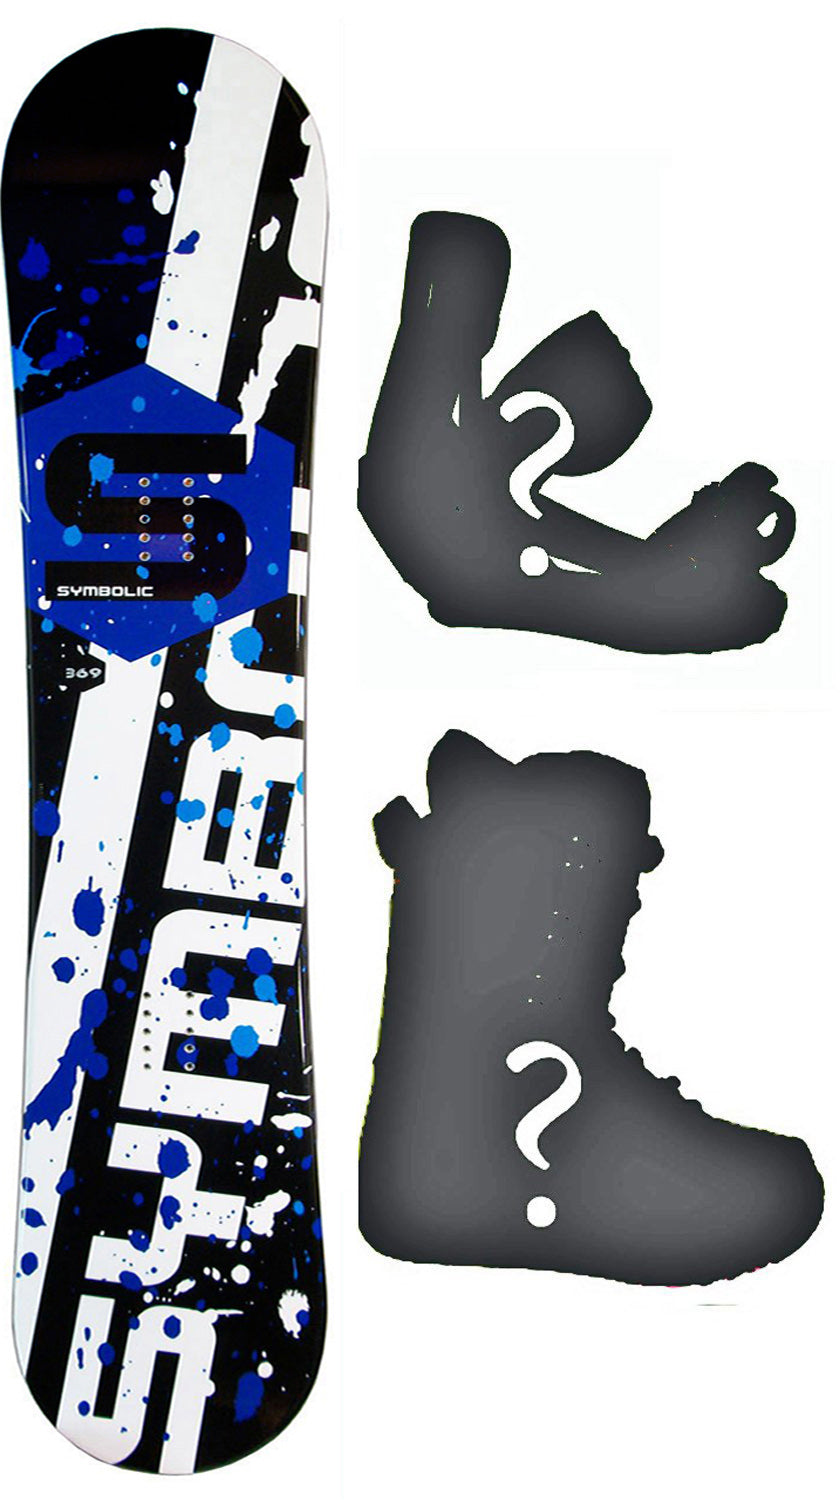 158cm 160cm 163cm Wide Symbolic 369 Rocker Mens Board or Build a Snowboard Package with Boots and Bindings